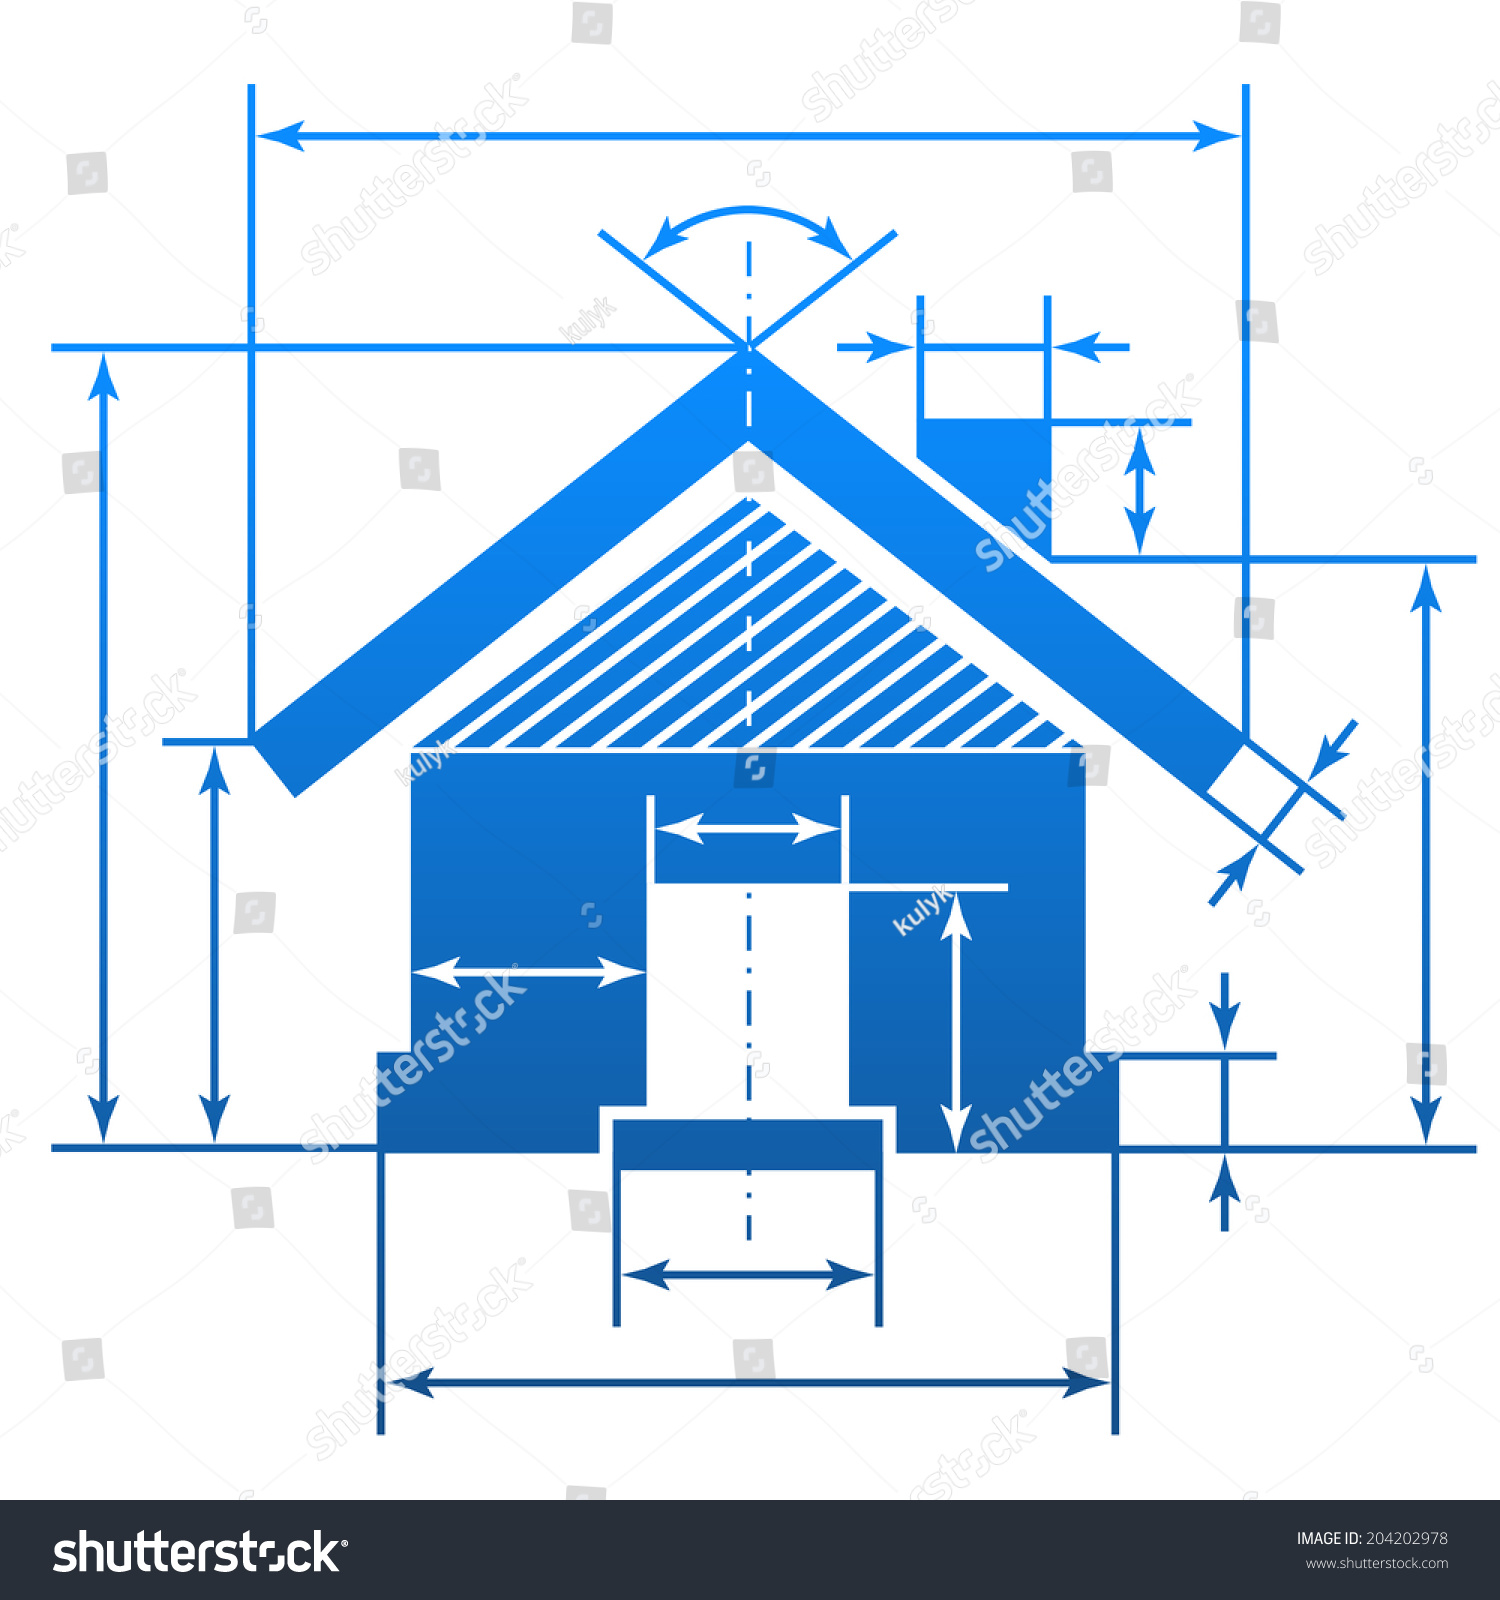 Home symbol with dimension lines element of blueprint drawing in shape of house sign